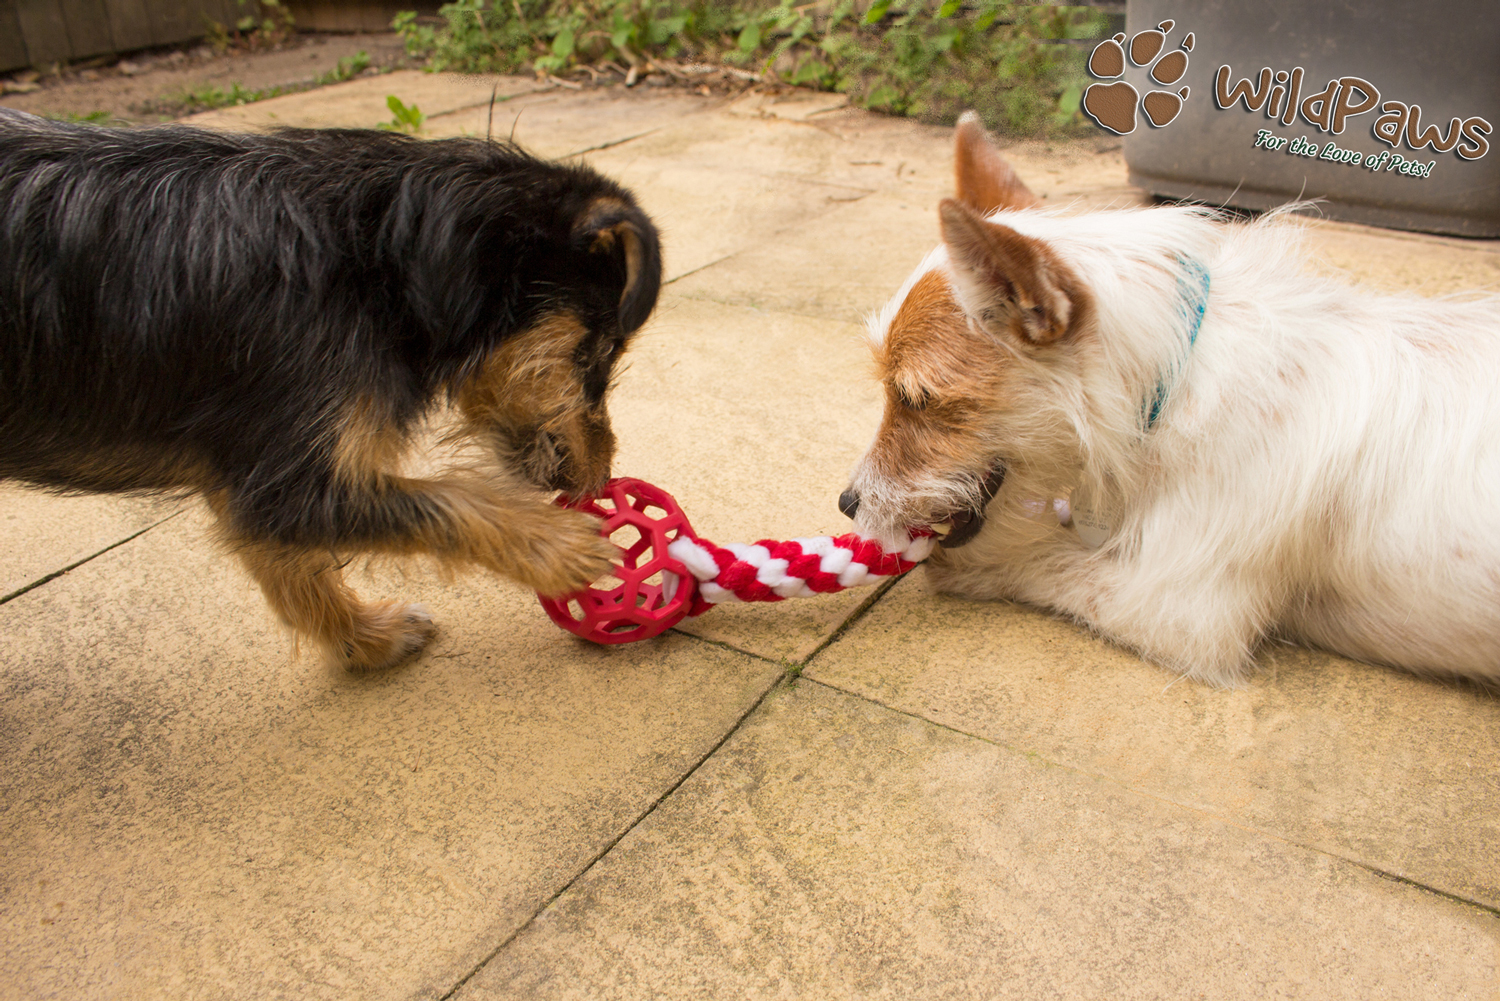 Wilbur & Paisley Online Pet Shop Blog Review for Ruffle Snuffle